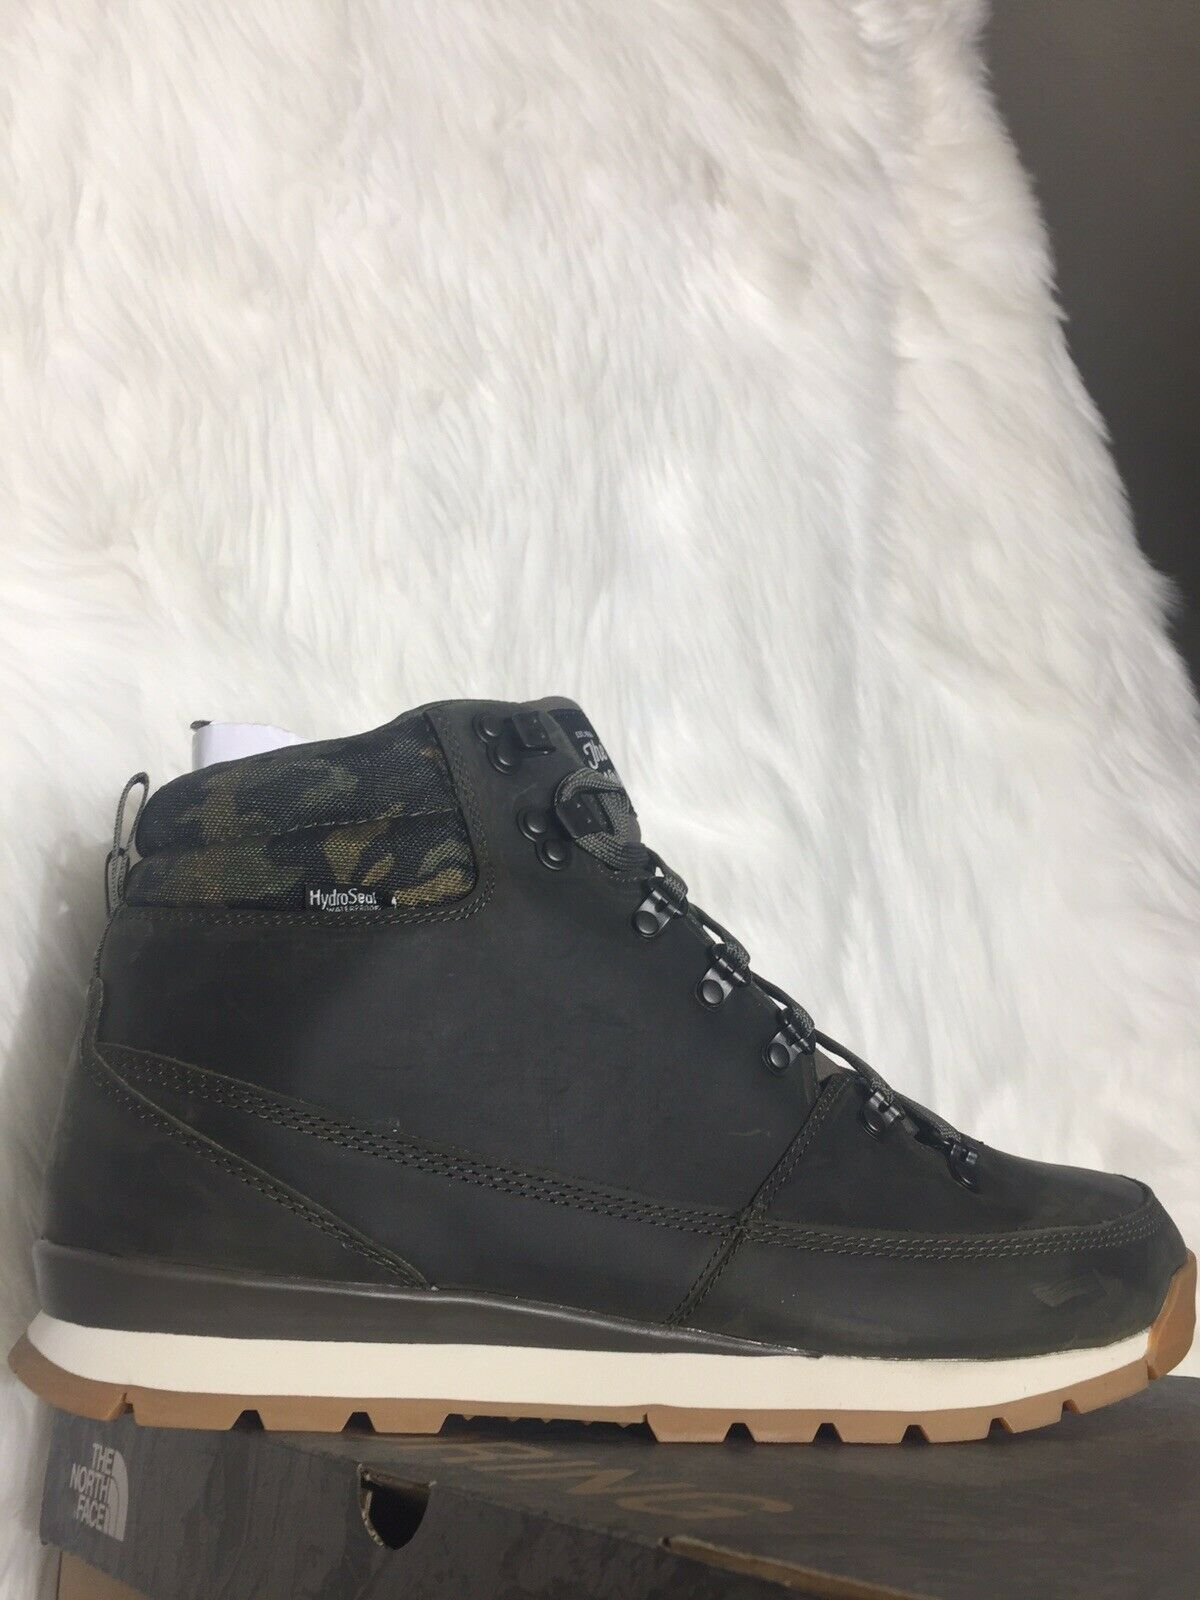 The North Face Mens Back To Berkeley Green Ankle Boots Size 11.5